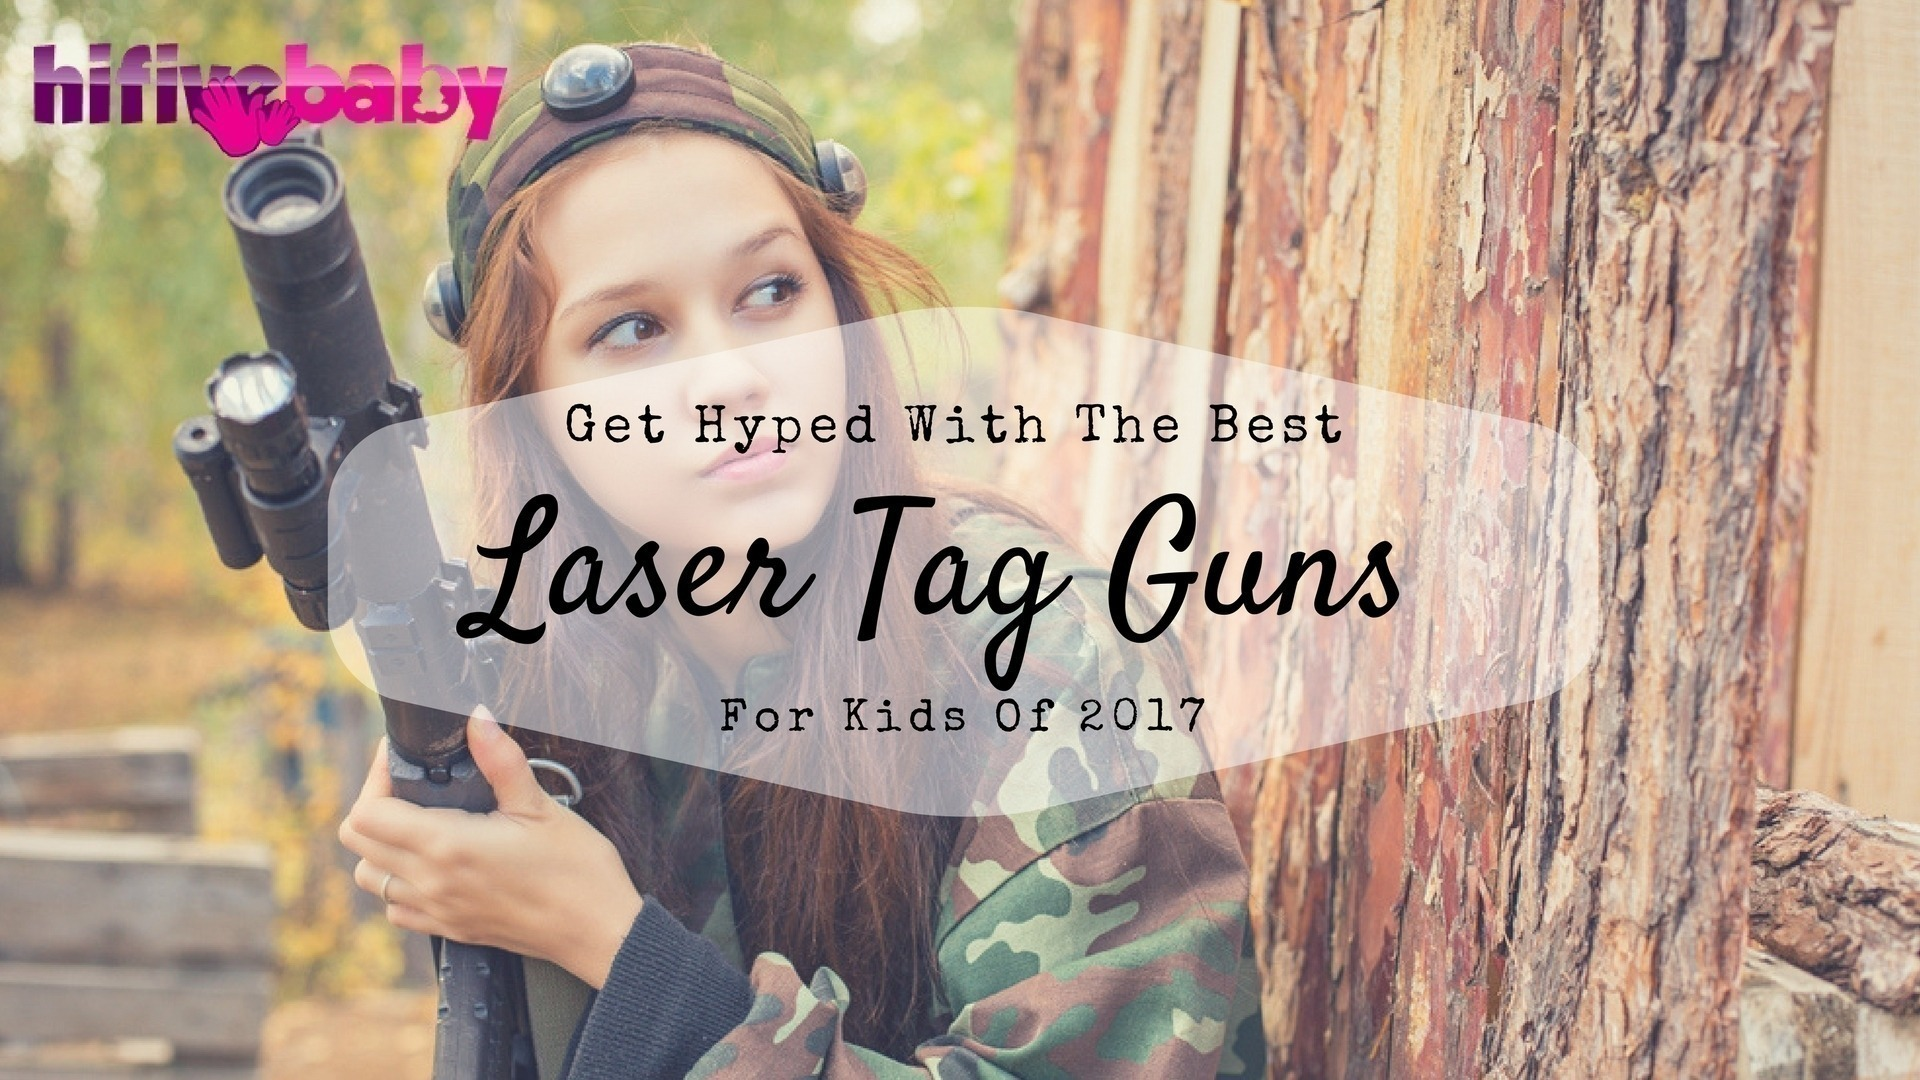 Get Hyped With The Best Laser Tag Guns For Kids Of 2018